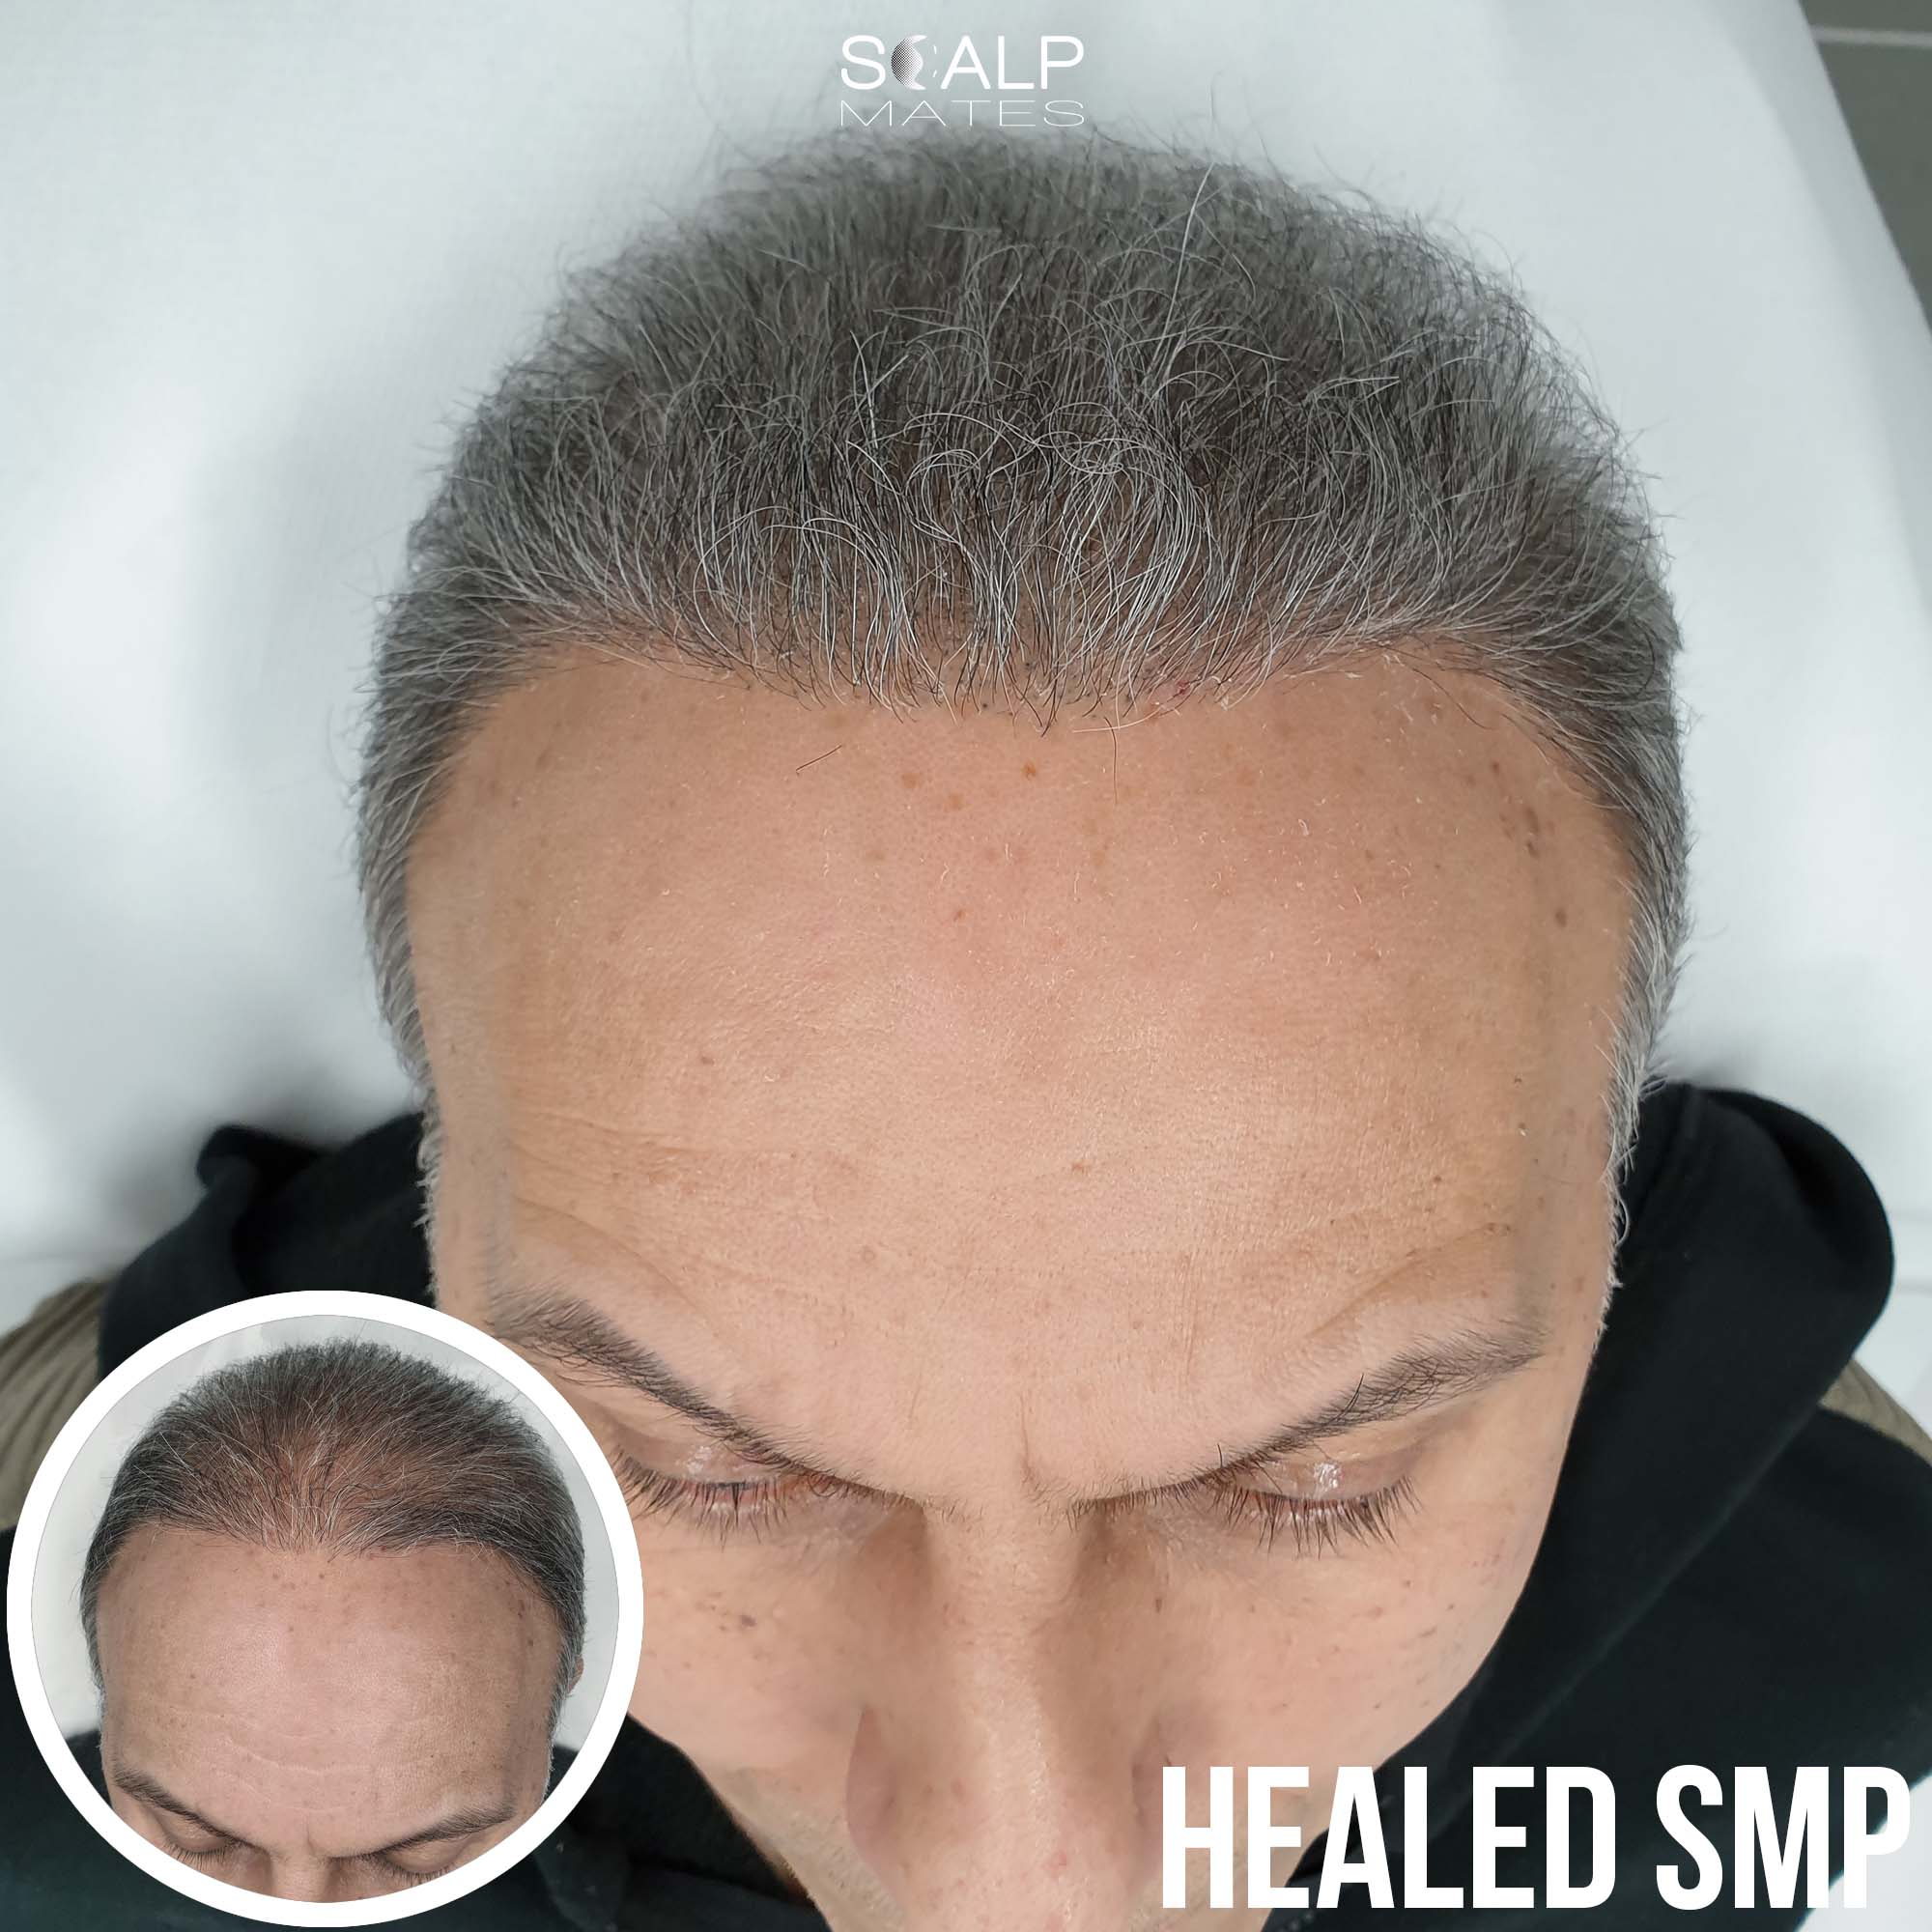 before and after Scap micropigmentation smp for hair thinning in men